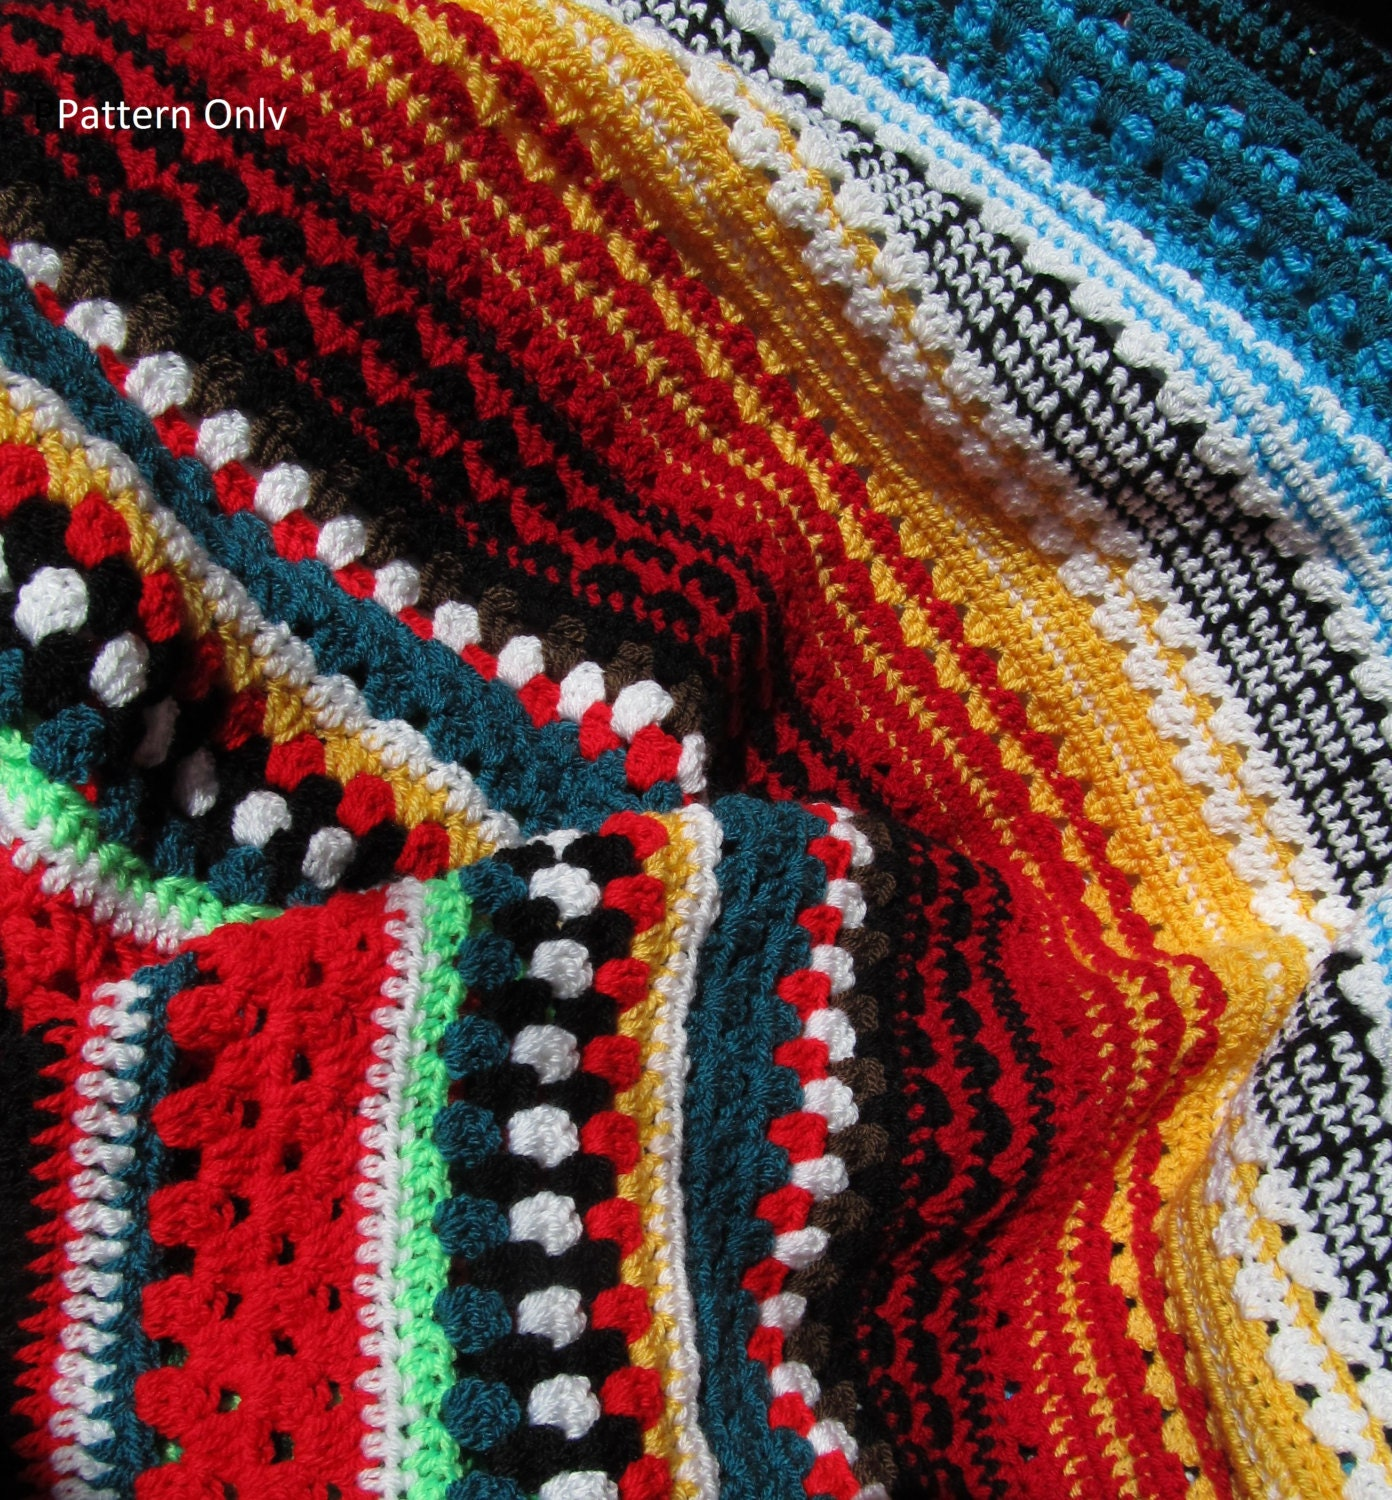 Crochet Afghan Patterns Stripes : crochet blanket pattern afghan multicolor Serape Stripe